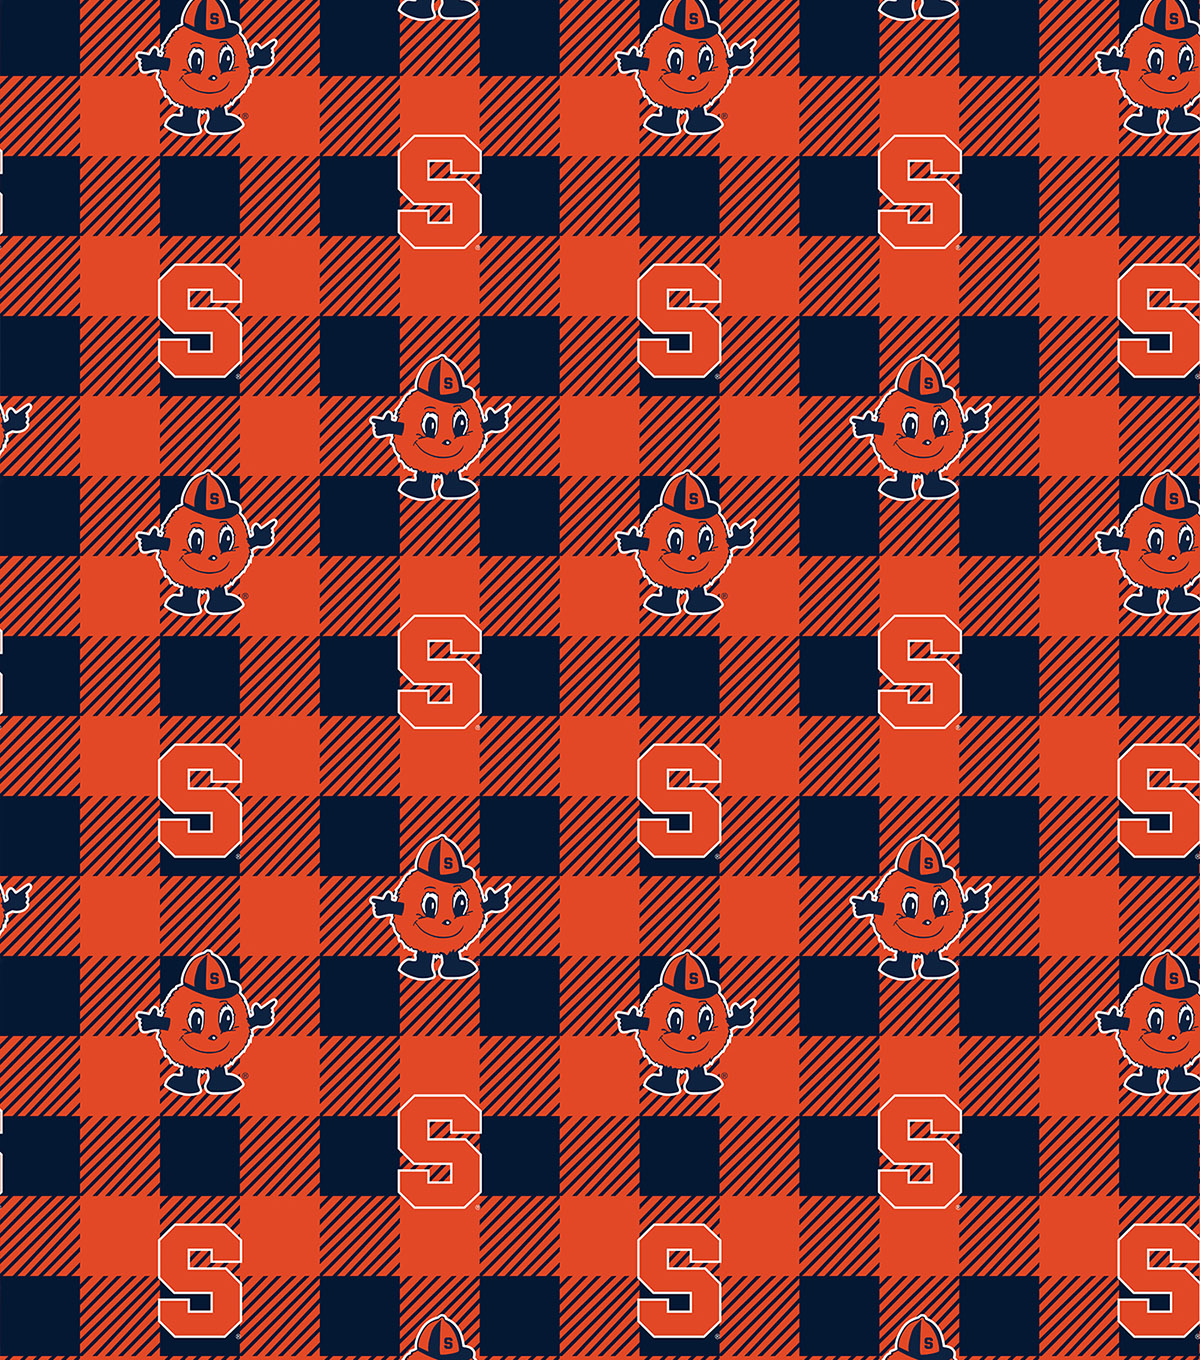 Syrcuse University Orange Fleece Fabric-Buffalo Plaid